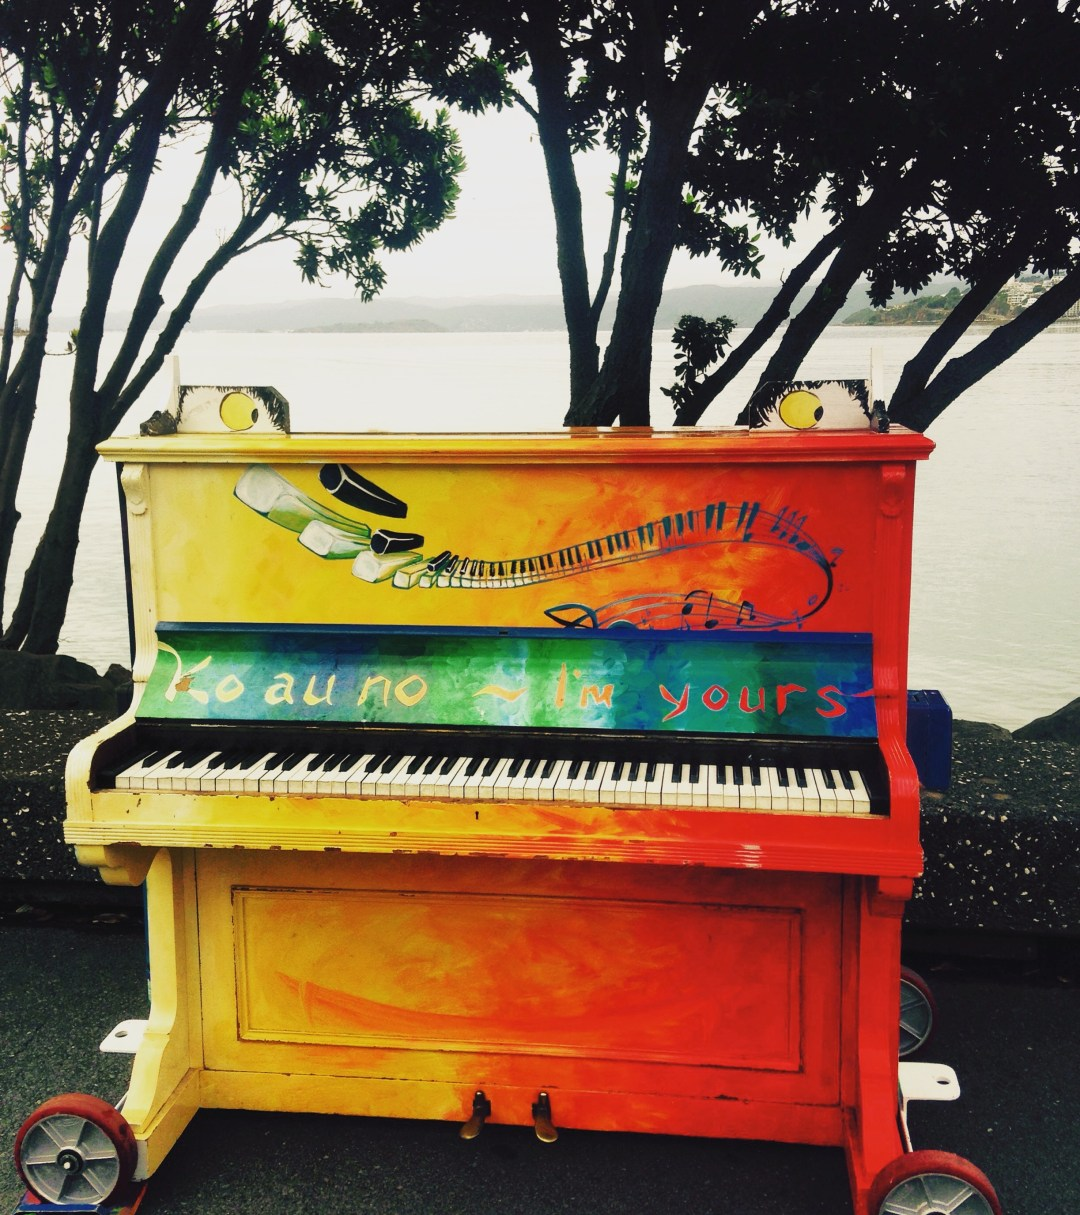 brightly painted piano stands in front of a moody Wellington harbour